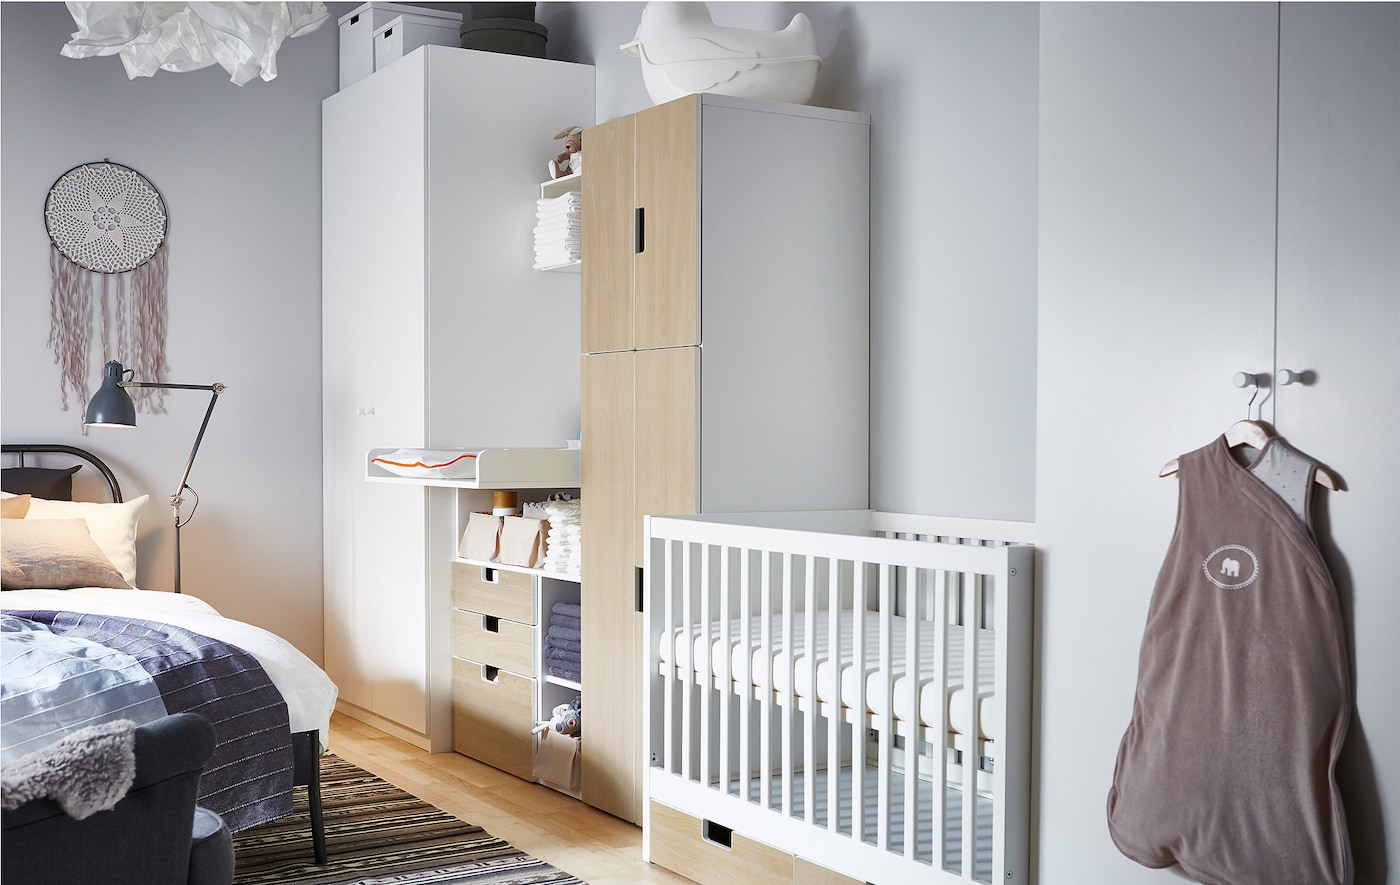 This nursery idea places a cot, changing table and babies storage in between two wardrobes for the parents.